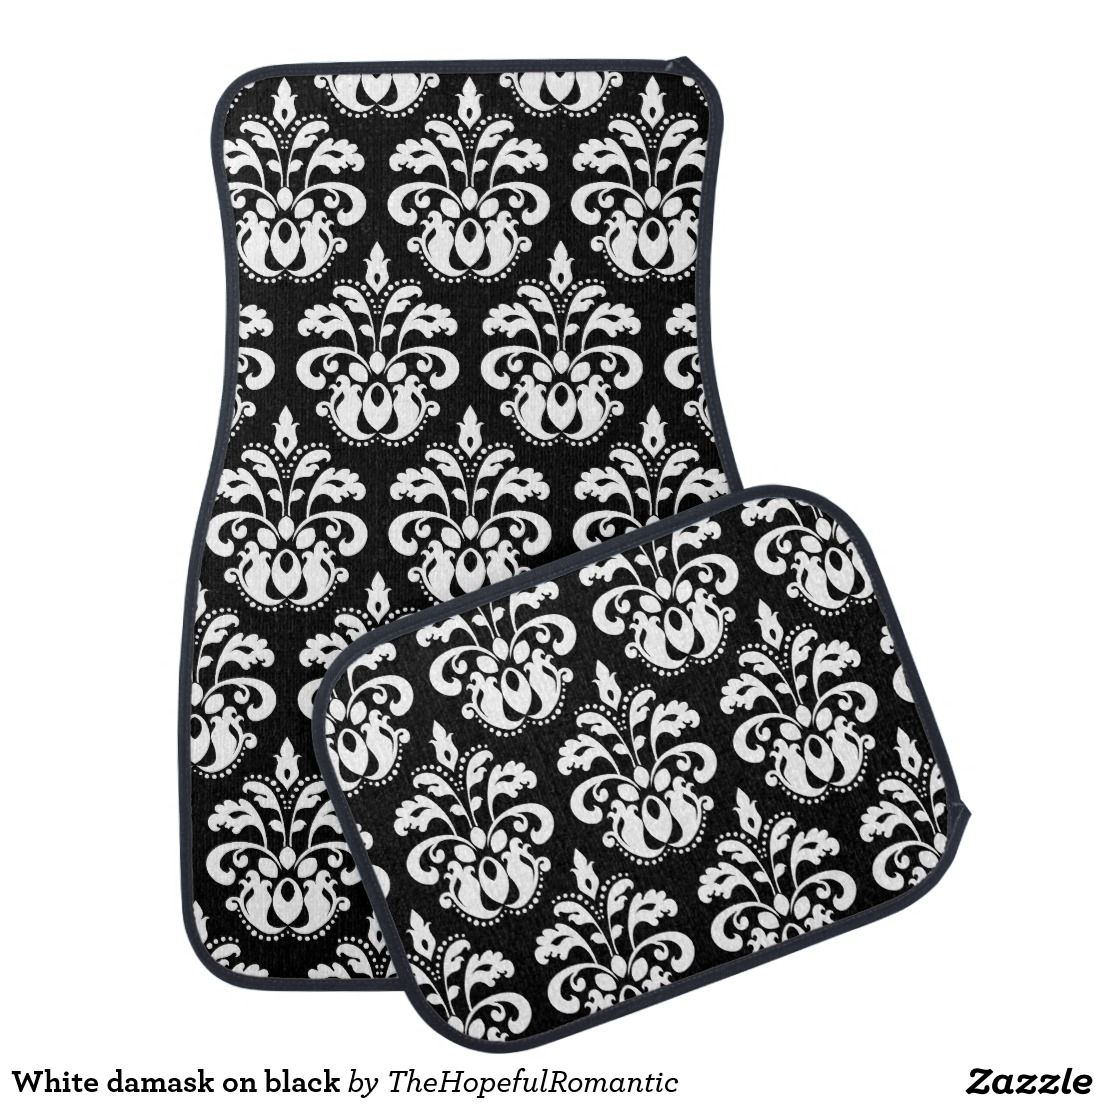 White damask on black car mat Artwork designed by Lori's creations